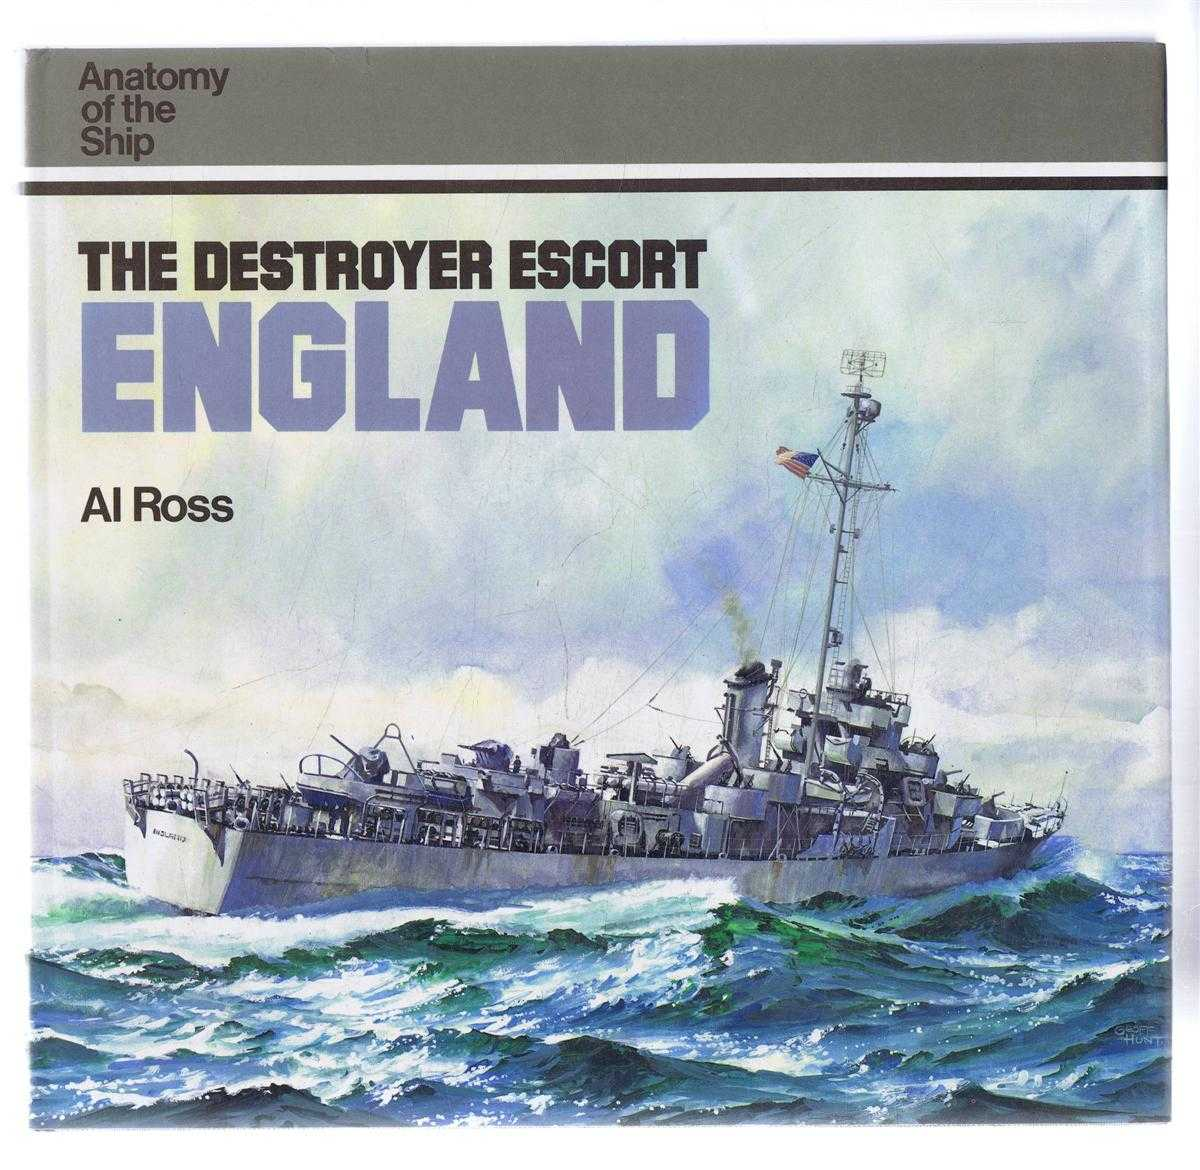 The Destroyer Escort England, Anatomy of the Ship, Al Ross